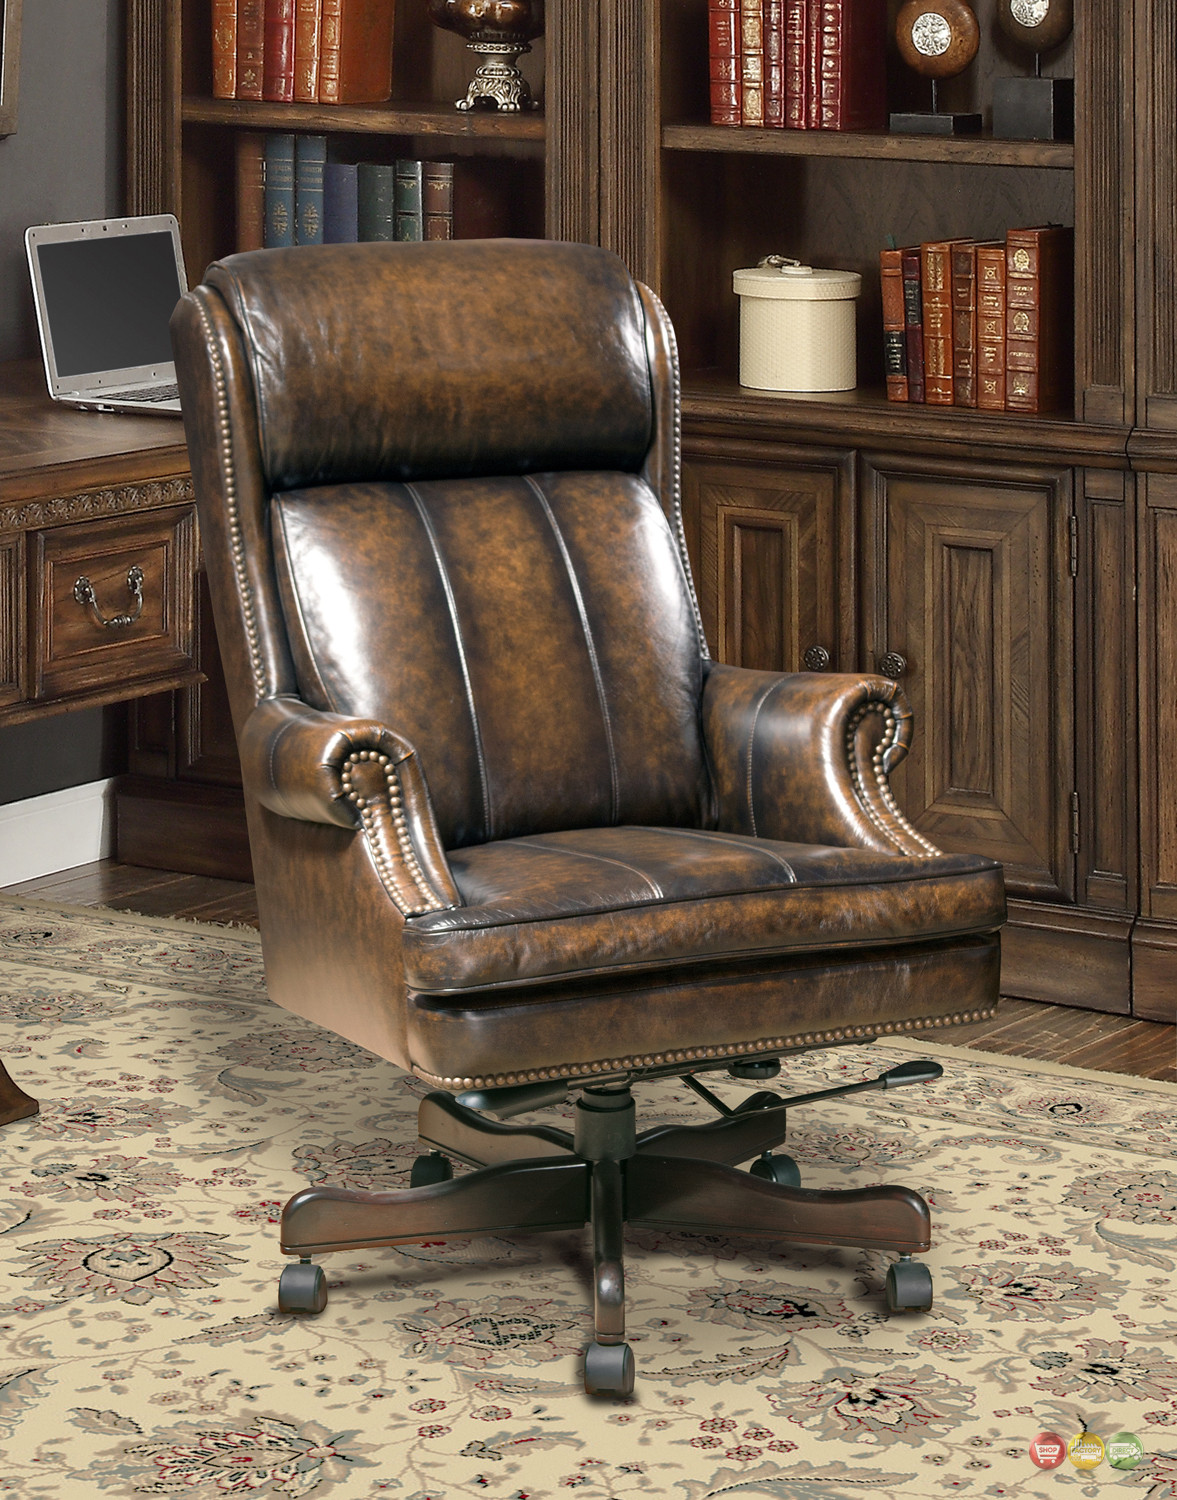 Best ideas about Leather Office Chair . Save or Pin Executive fice Desk Chair Genuine Brown Leather Now.